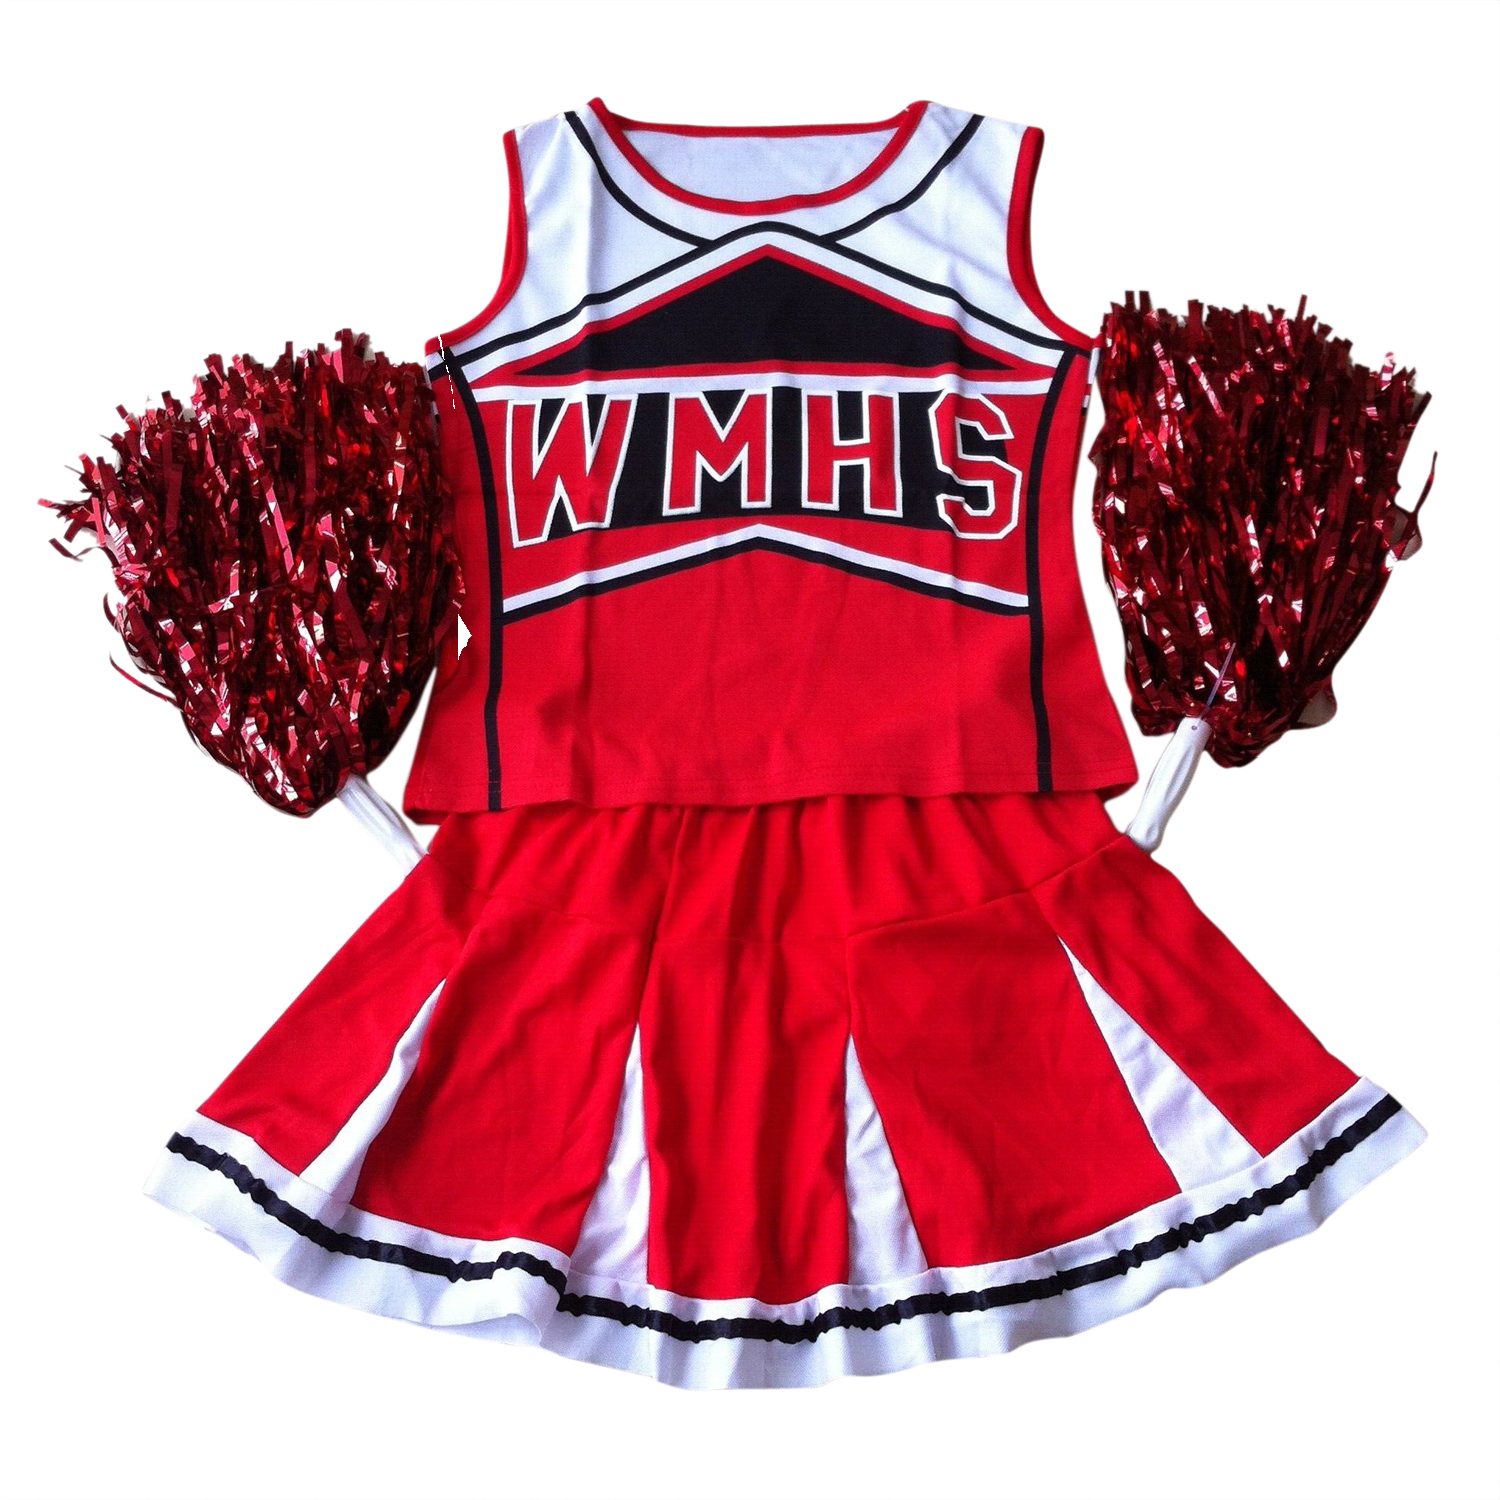 Tank top Petticoat Pom cheerleader cheer leaders S (30-32) 2 piece suit new red costume